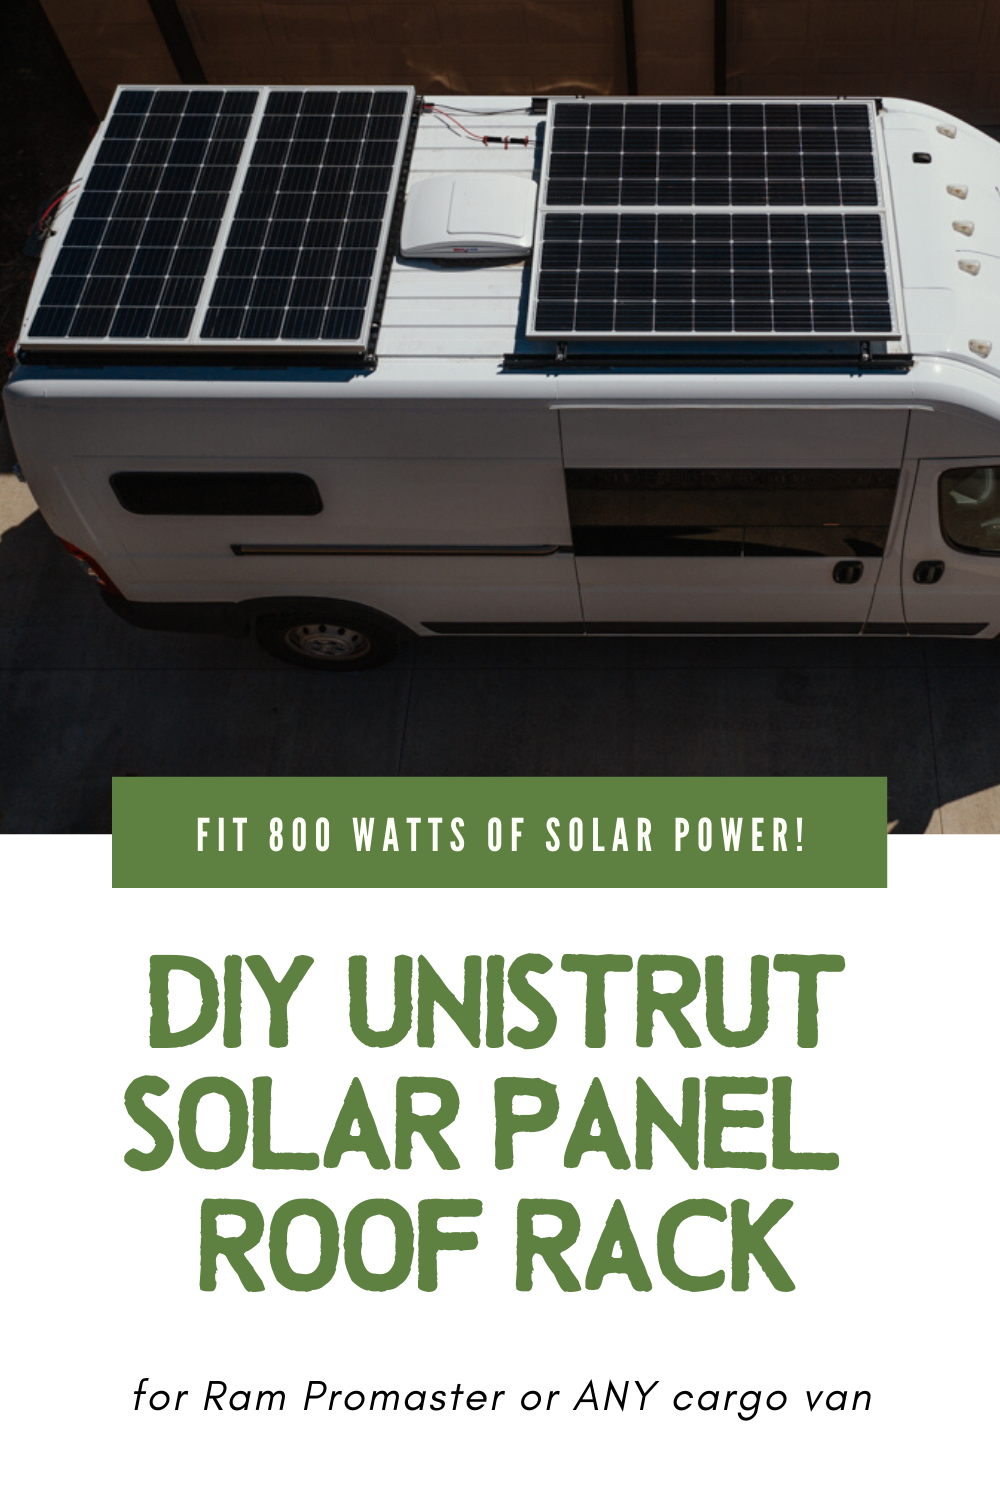 How To Build A Unistrut Roof Rack On A Van To Fit 800 Watts Of Solar Panels And A Fan In 2020 Solar Panels Roof Roof Rack Solar Panels